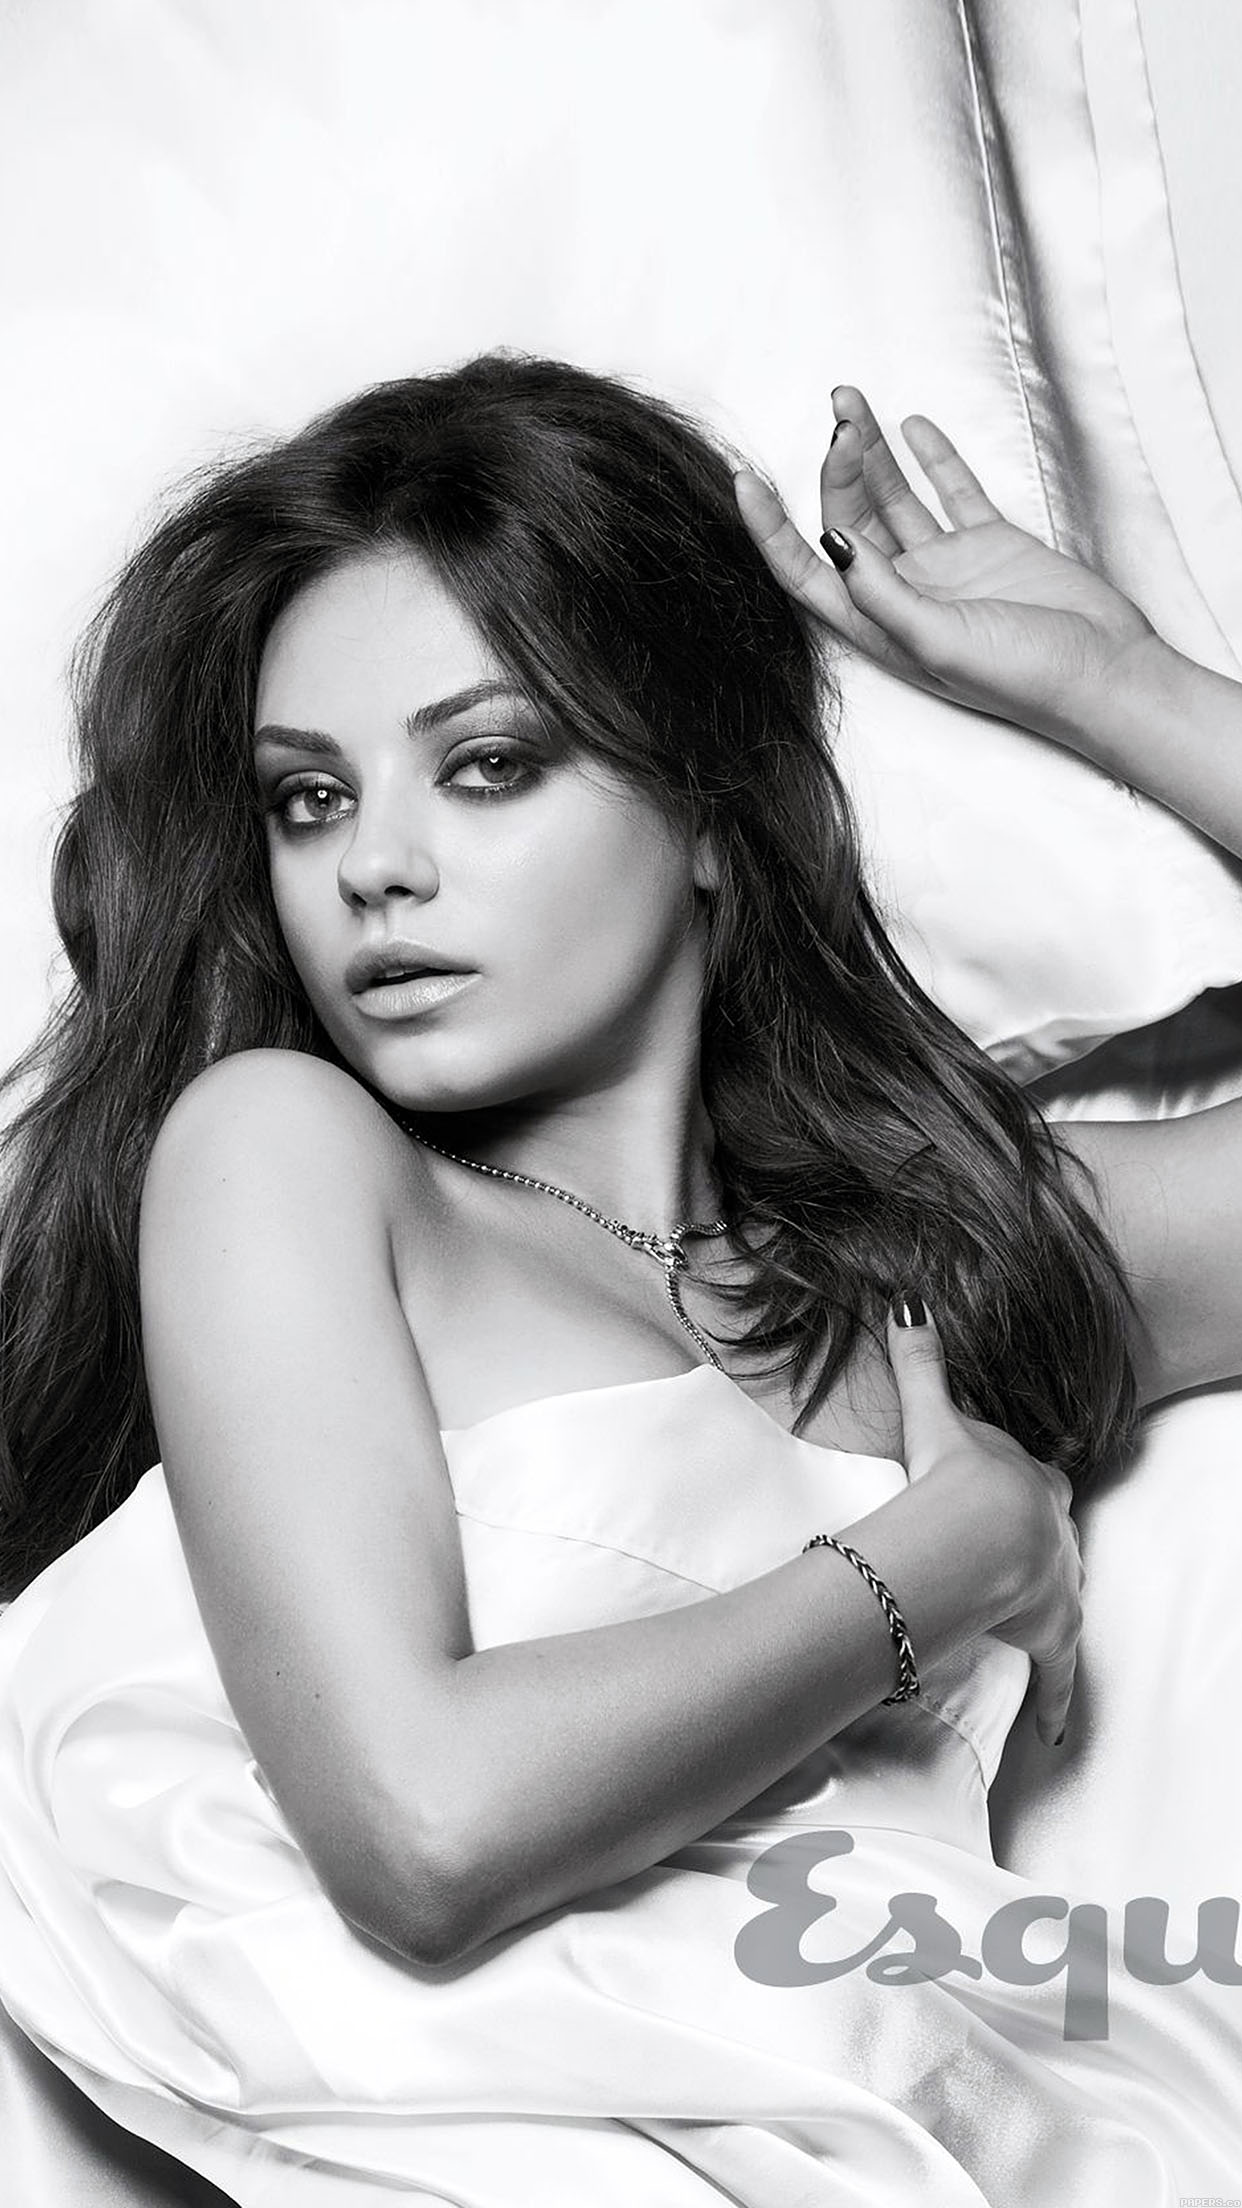 iphone7papers - ha99-wallpaper-mila-kunis-esquire-sexy-woman-face